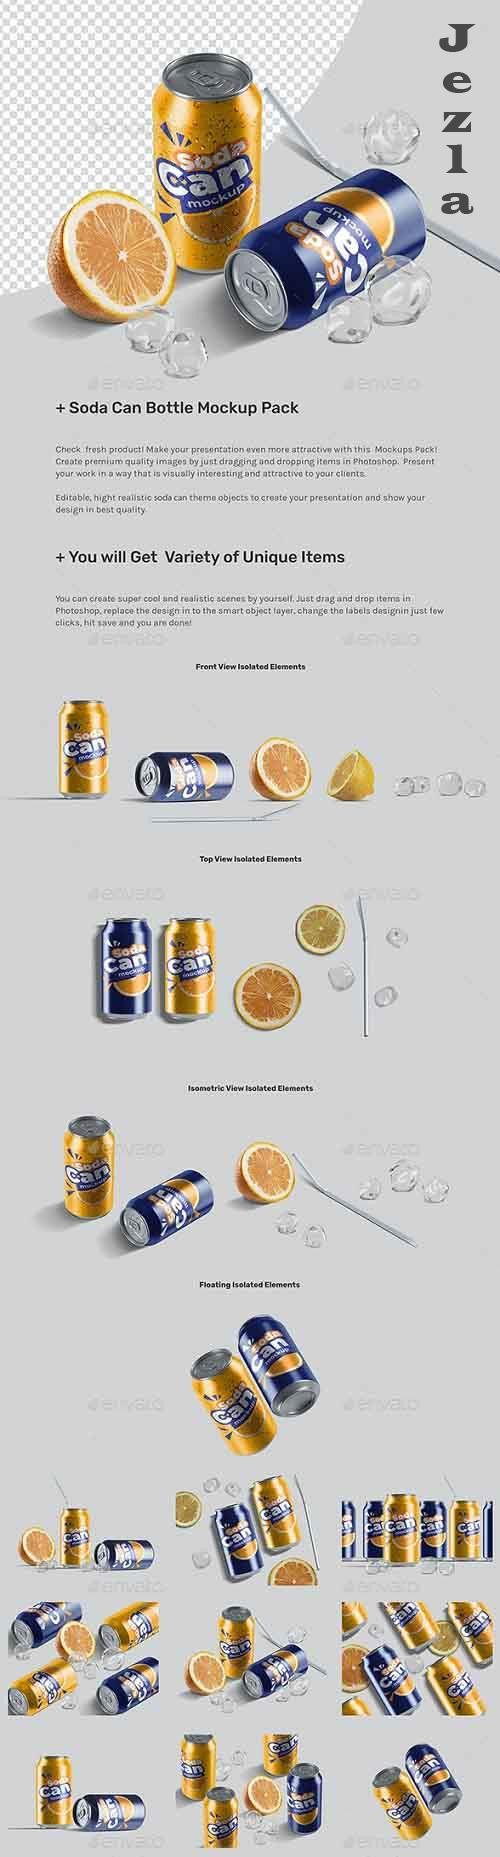 Soda Can Mockup Pack 26857279